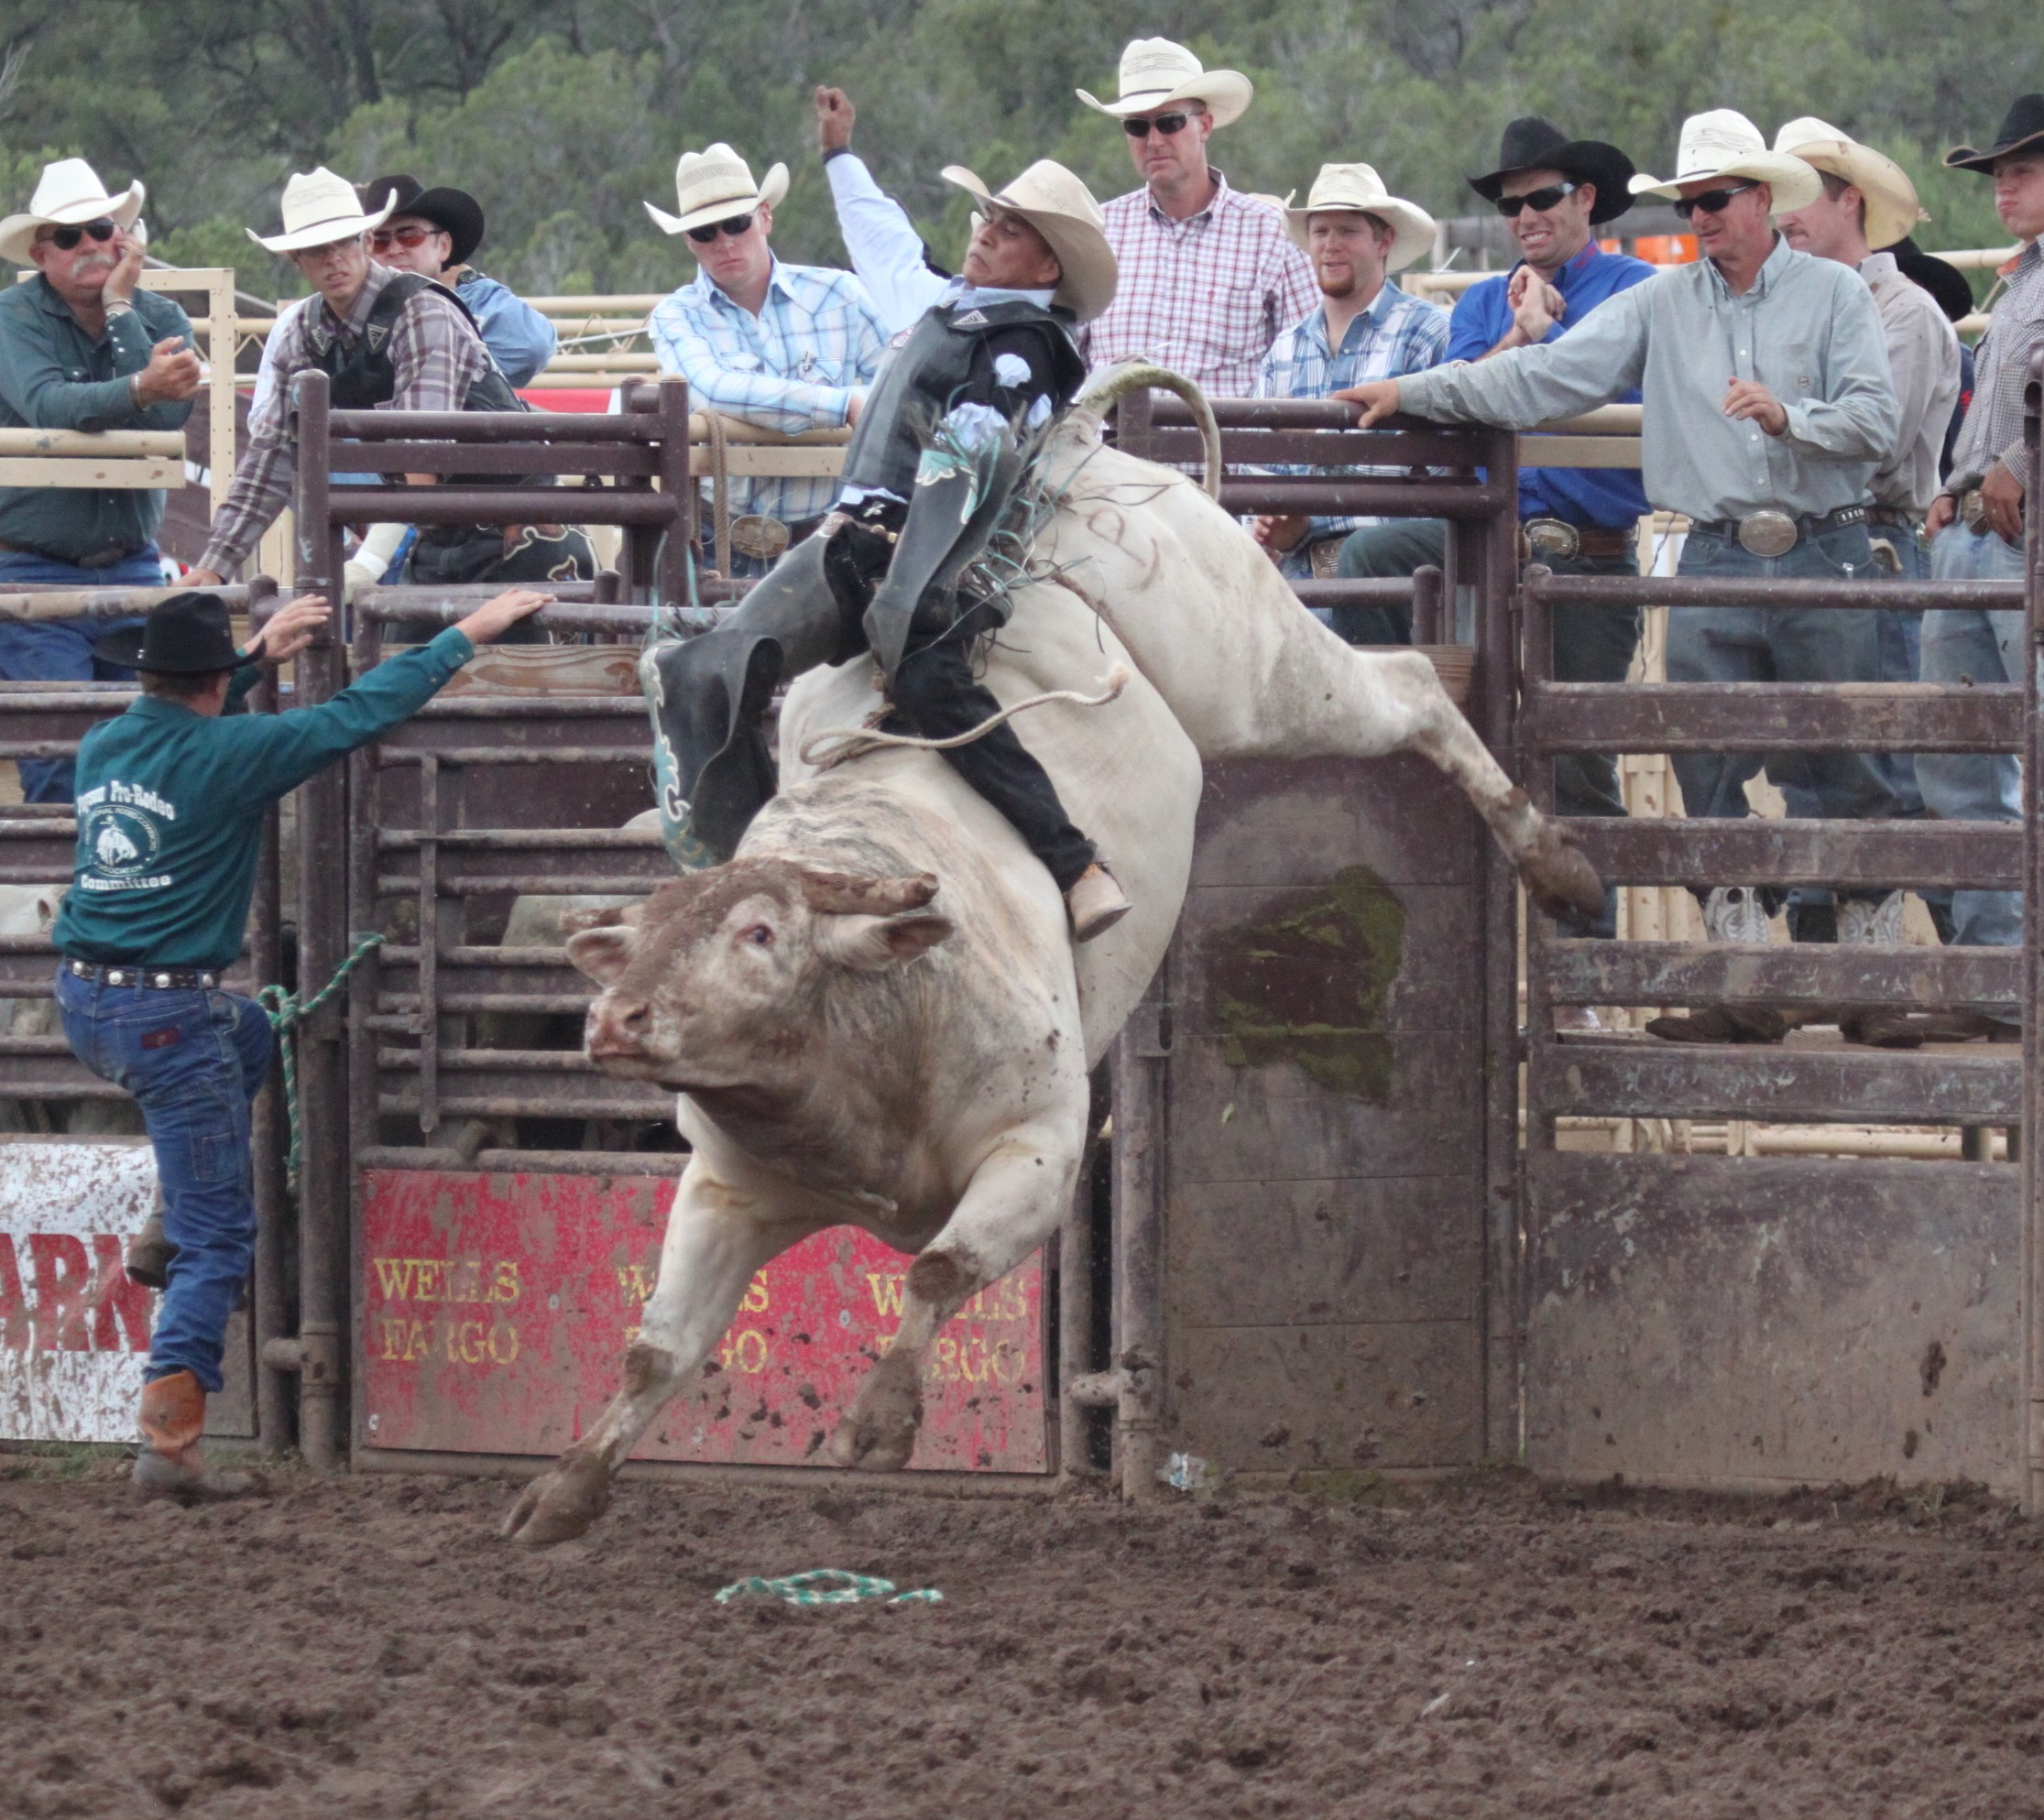 136th Annual World S Oldest Continuous Rodeo Visit Arizona